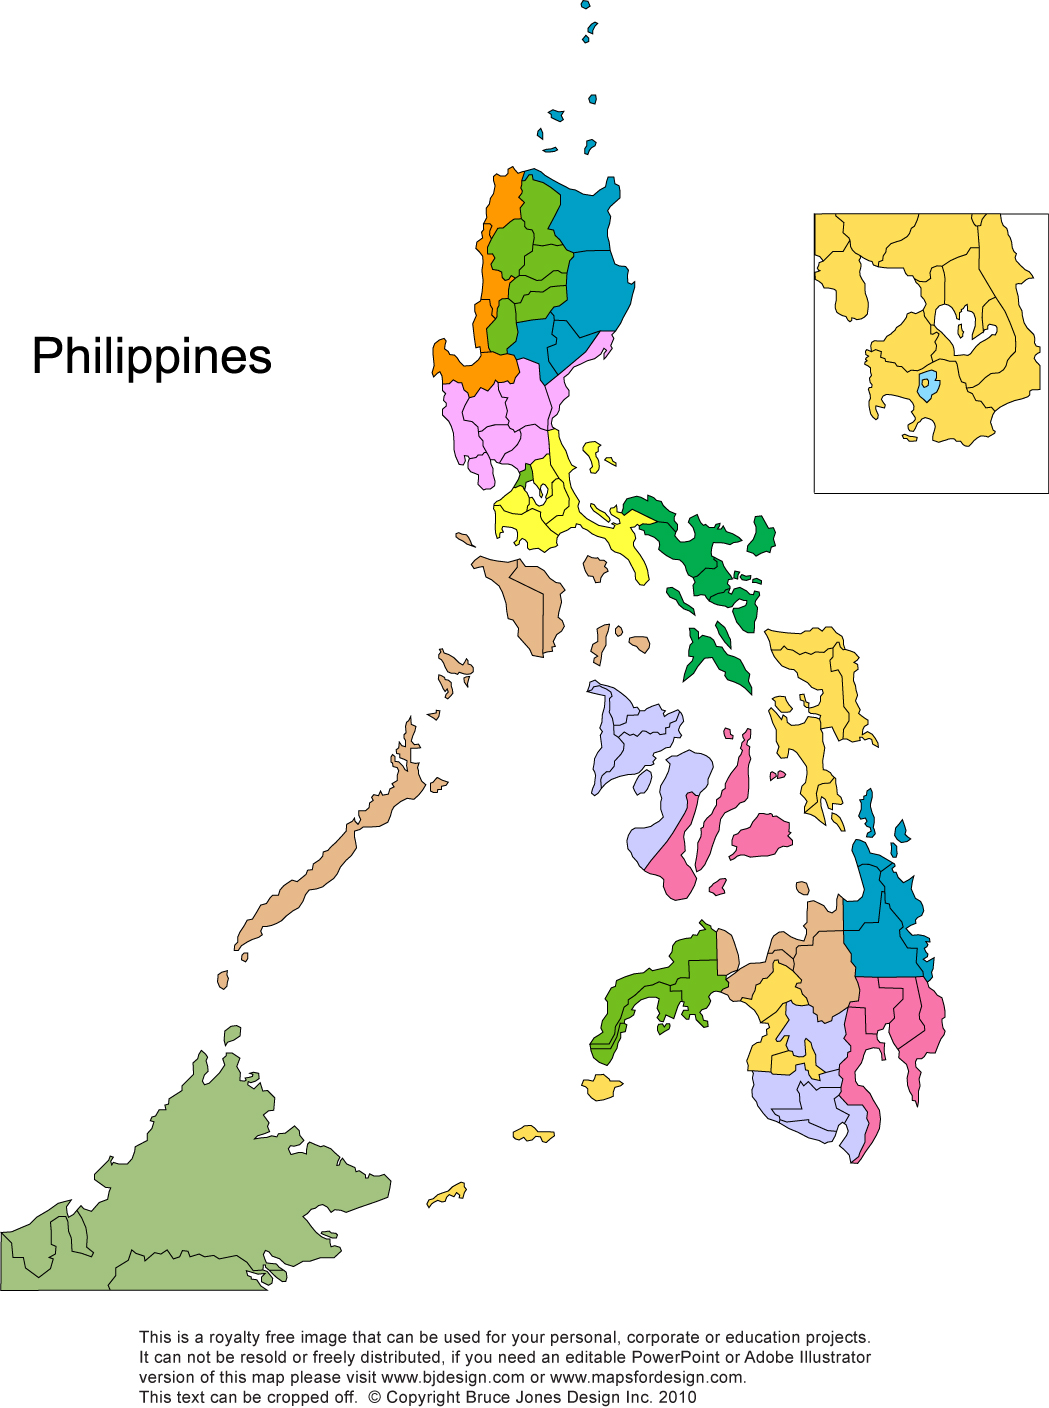 Philippines Printable, Blank Maps, Outline Maps • Royalty Free